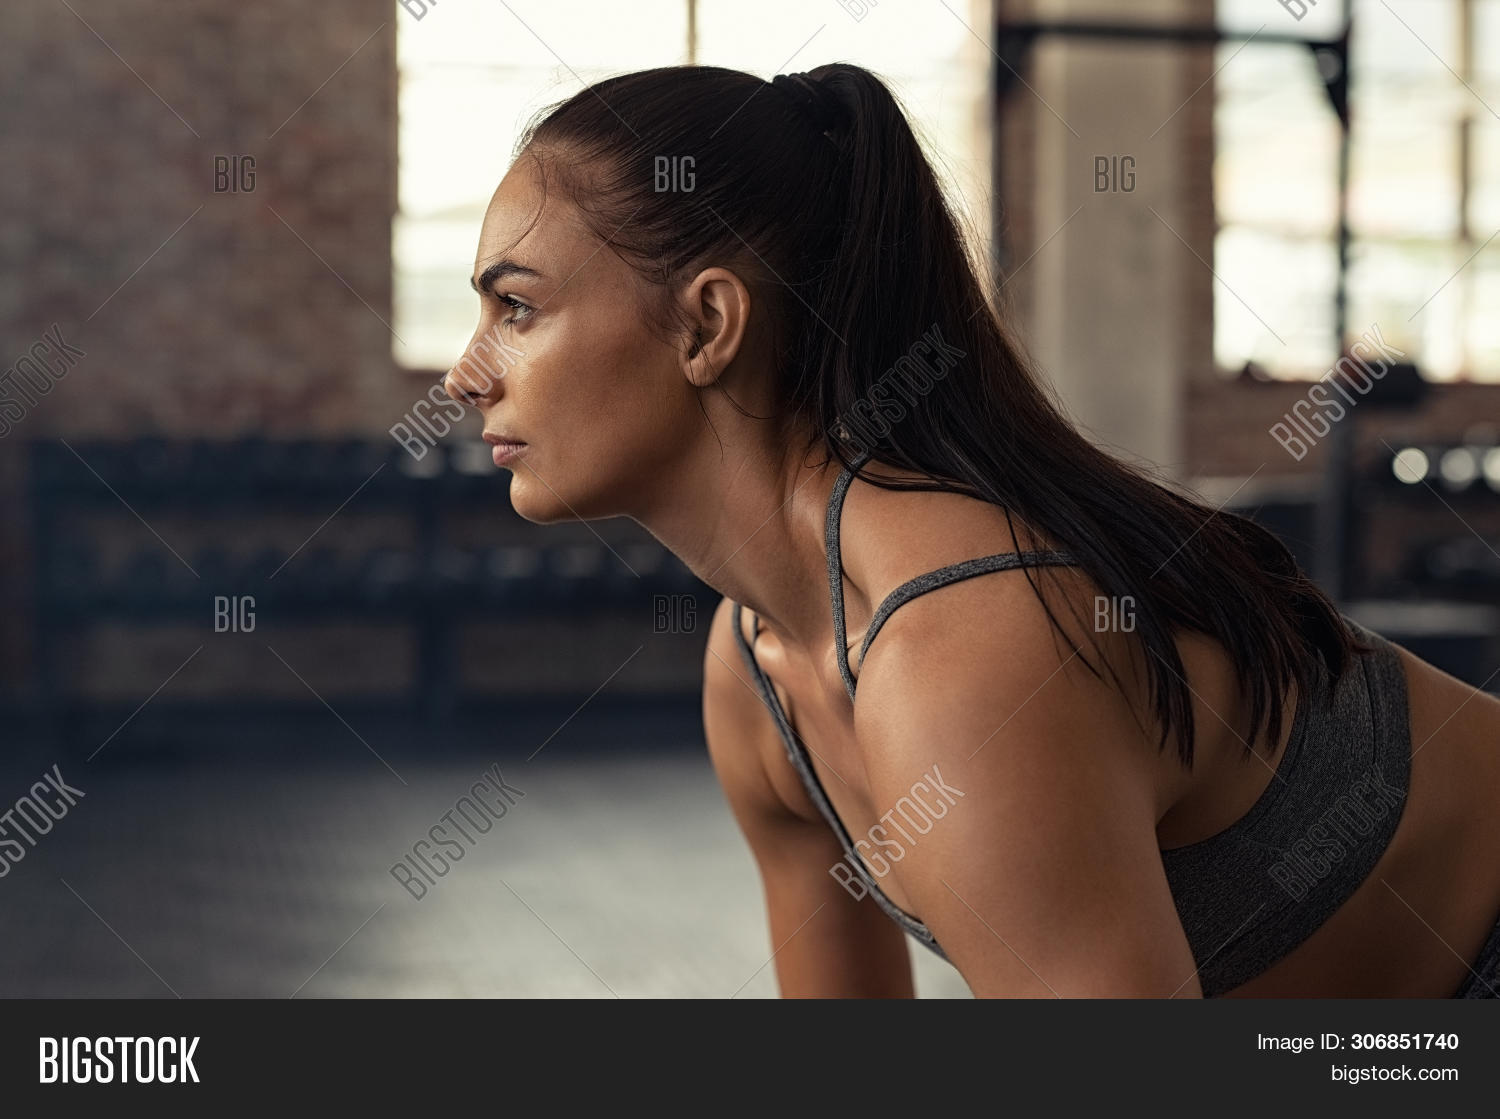 Young woman doing squat exercise while looking away at gym. Closeup of muscular girl while exercisin